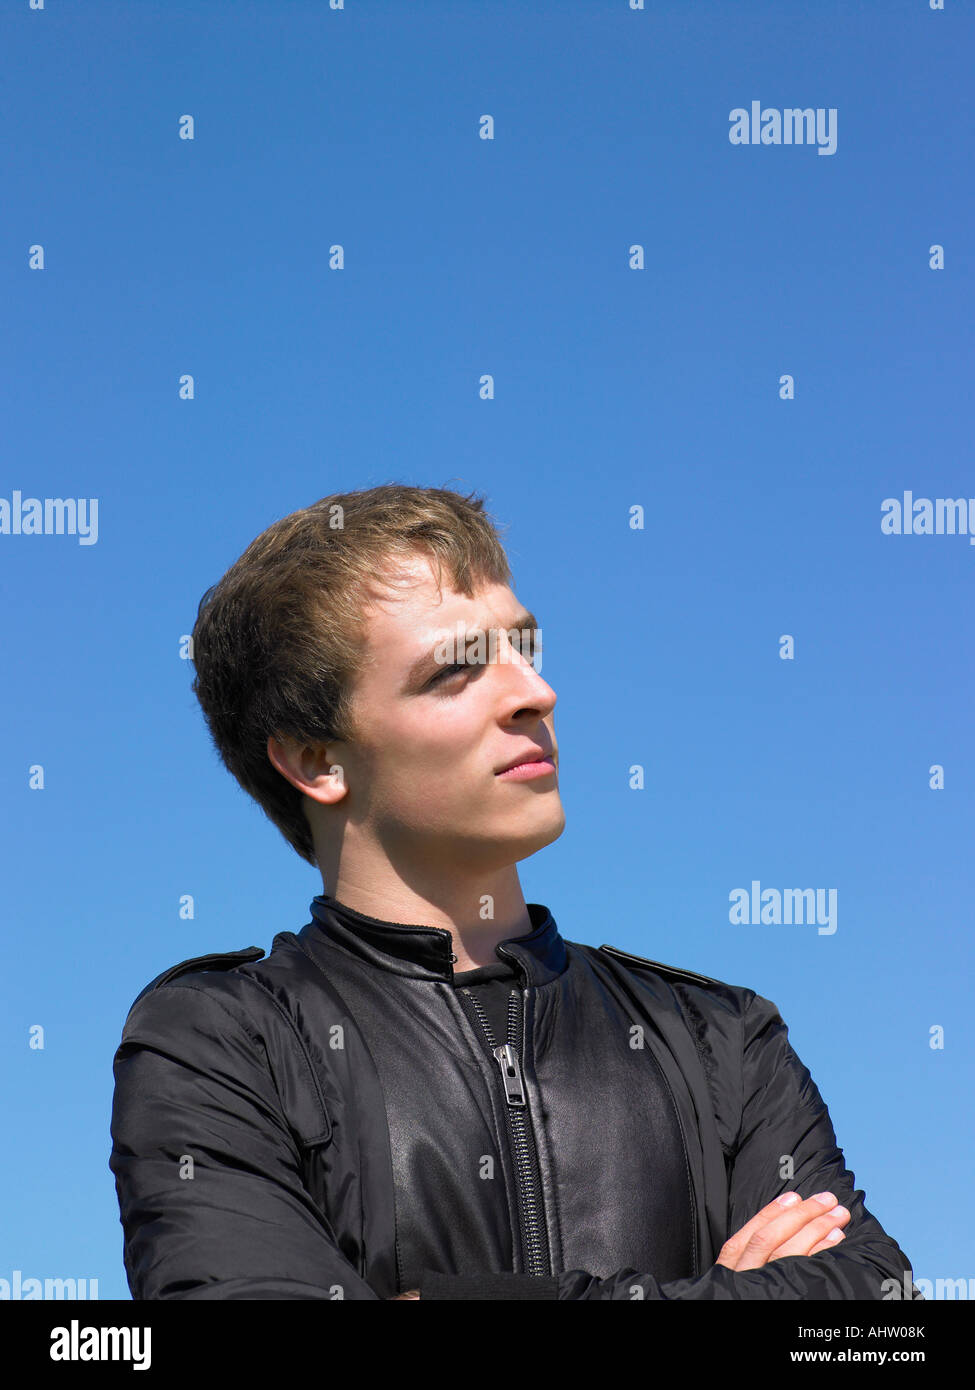 Young man outdoors looking out at something. - Stock Image